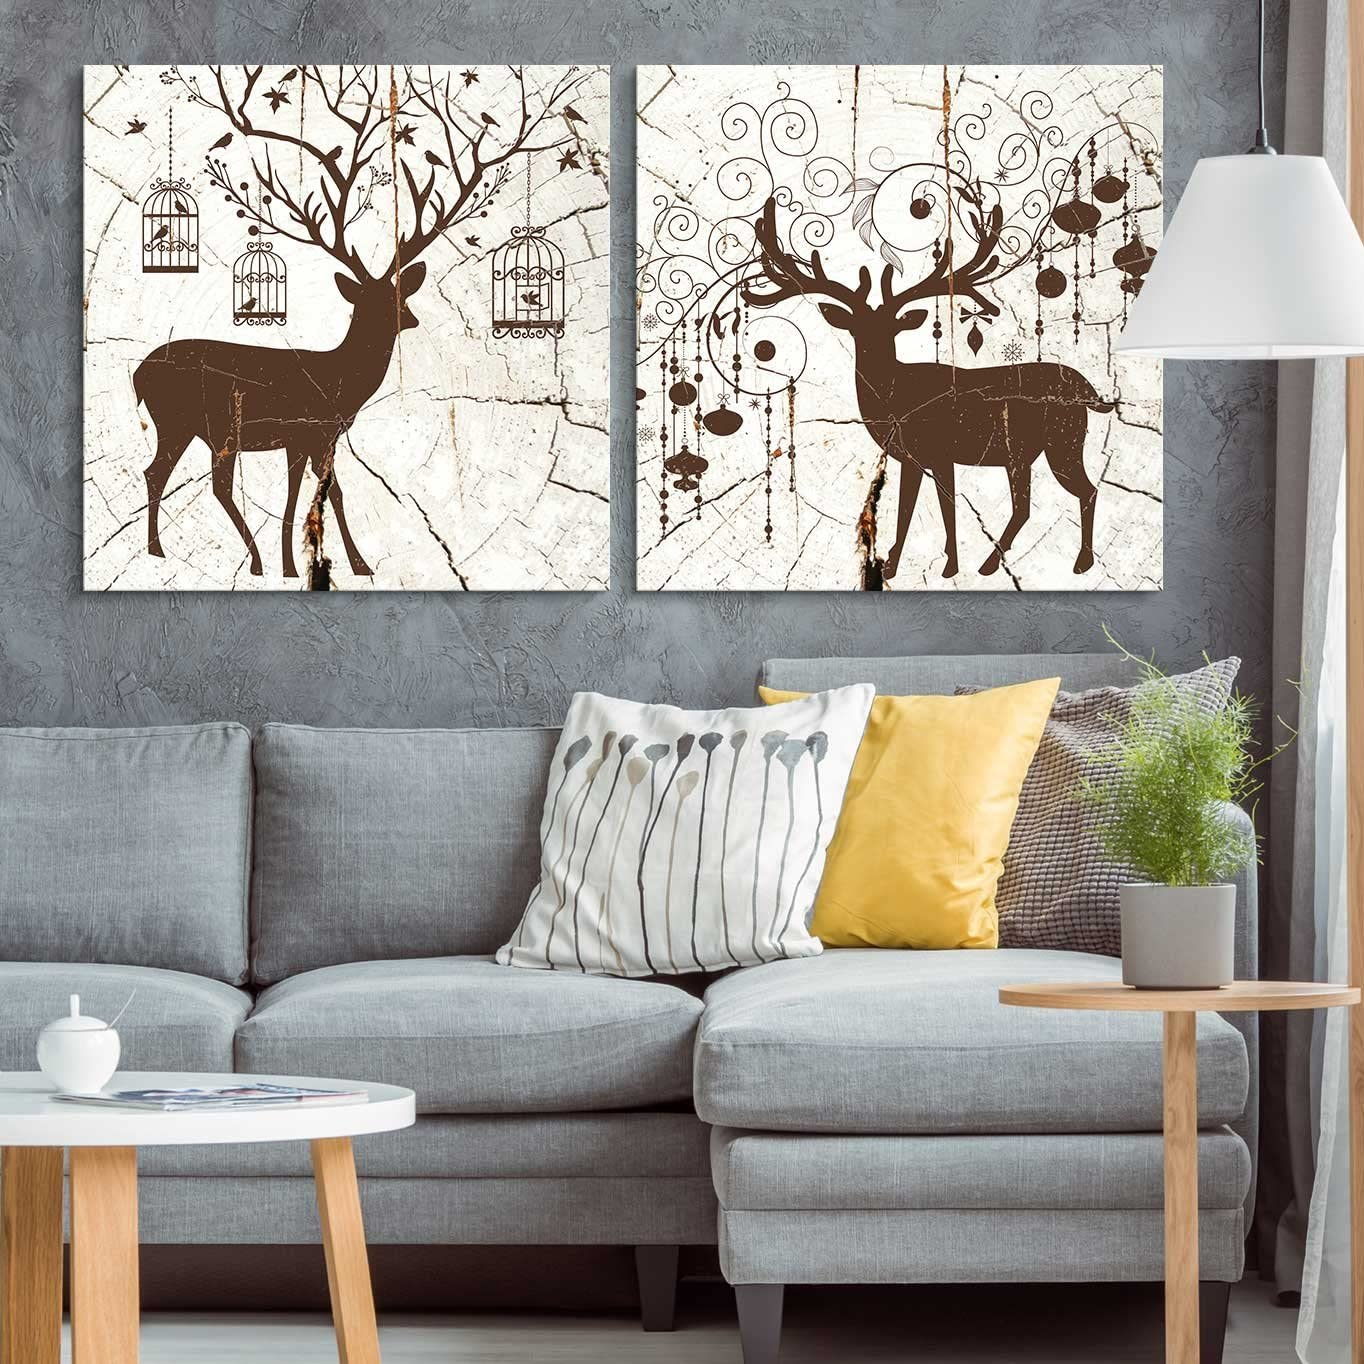 Wall26 2 Panel Square Canvas Wall Art Bohemian Deer Wood Effect Canvas Giclee Print Gallery Wrap Modern Home Art Ready To Hang 24 X24 X 2 Panels Posters Prints